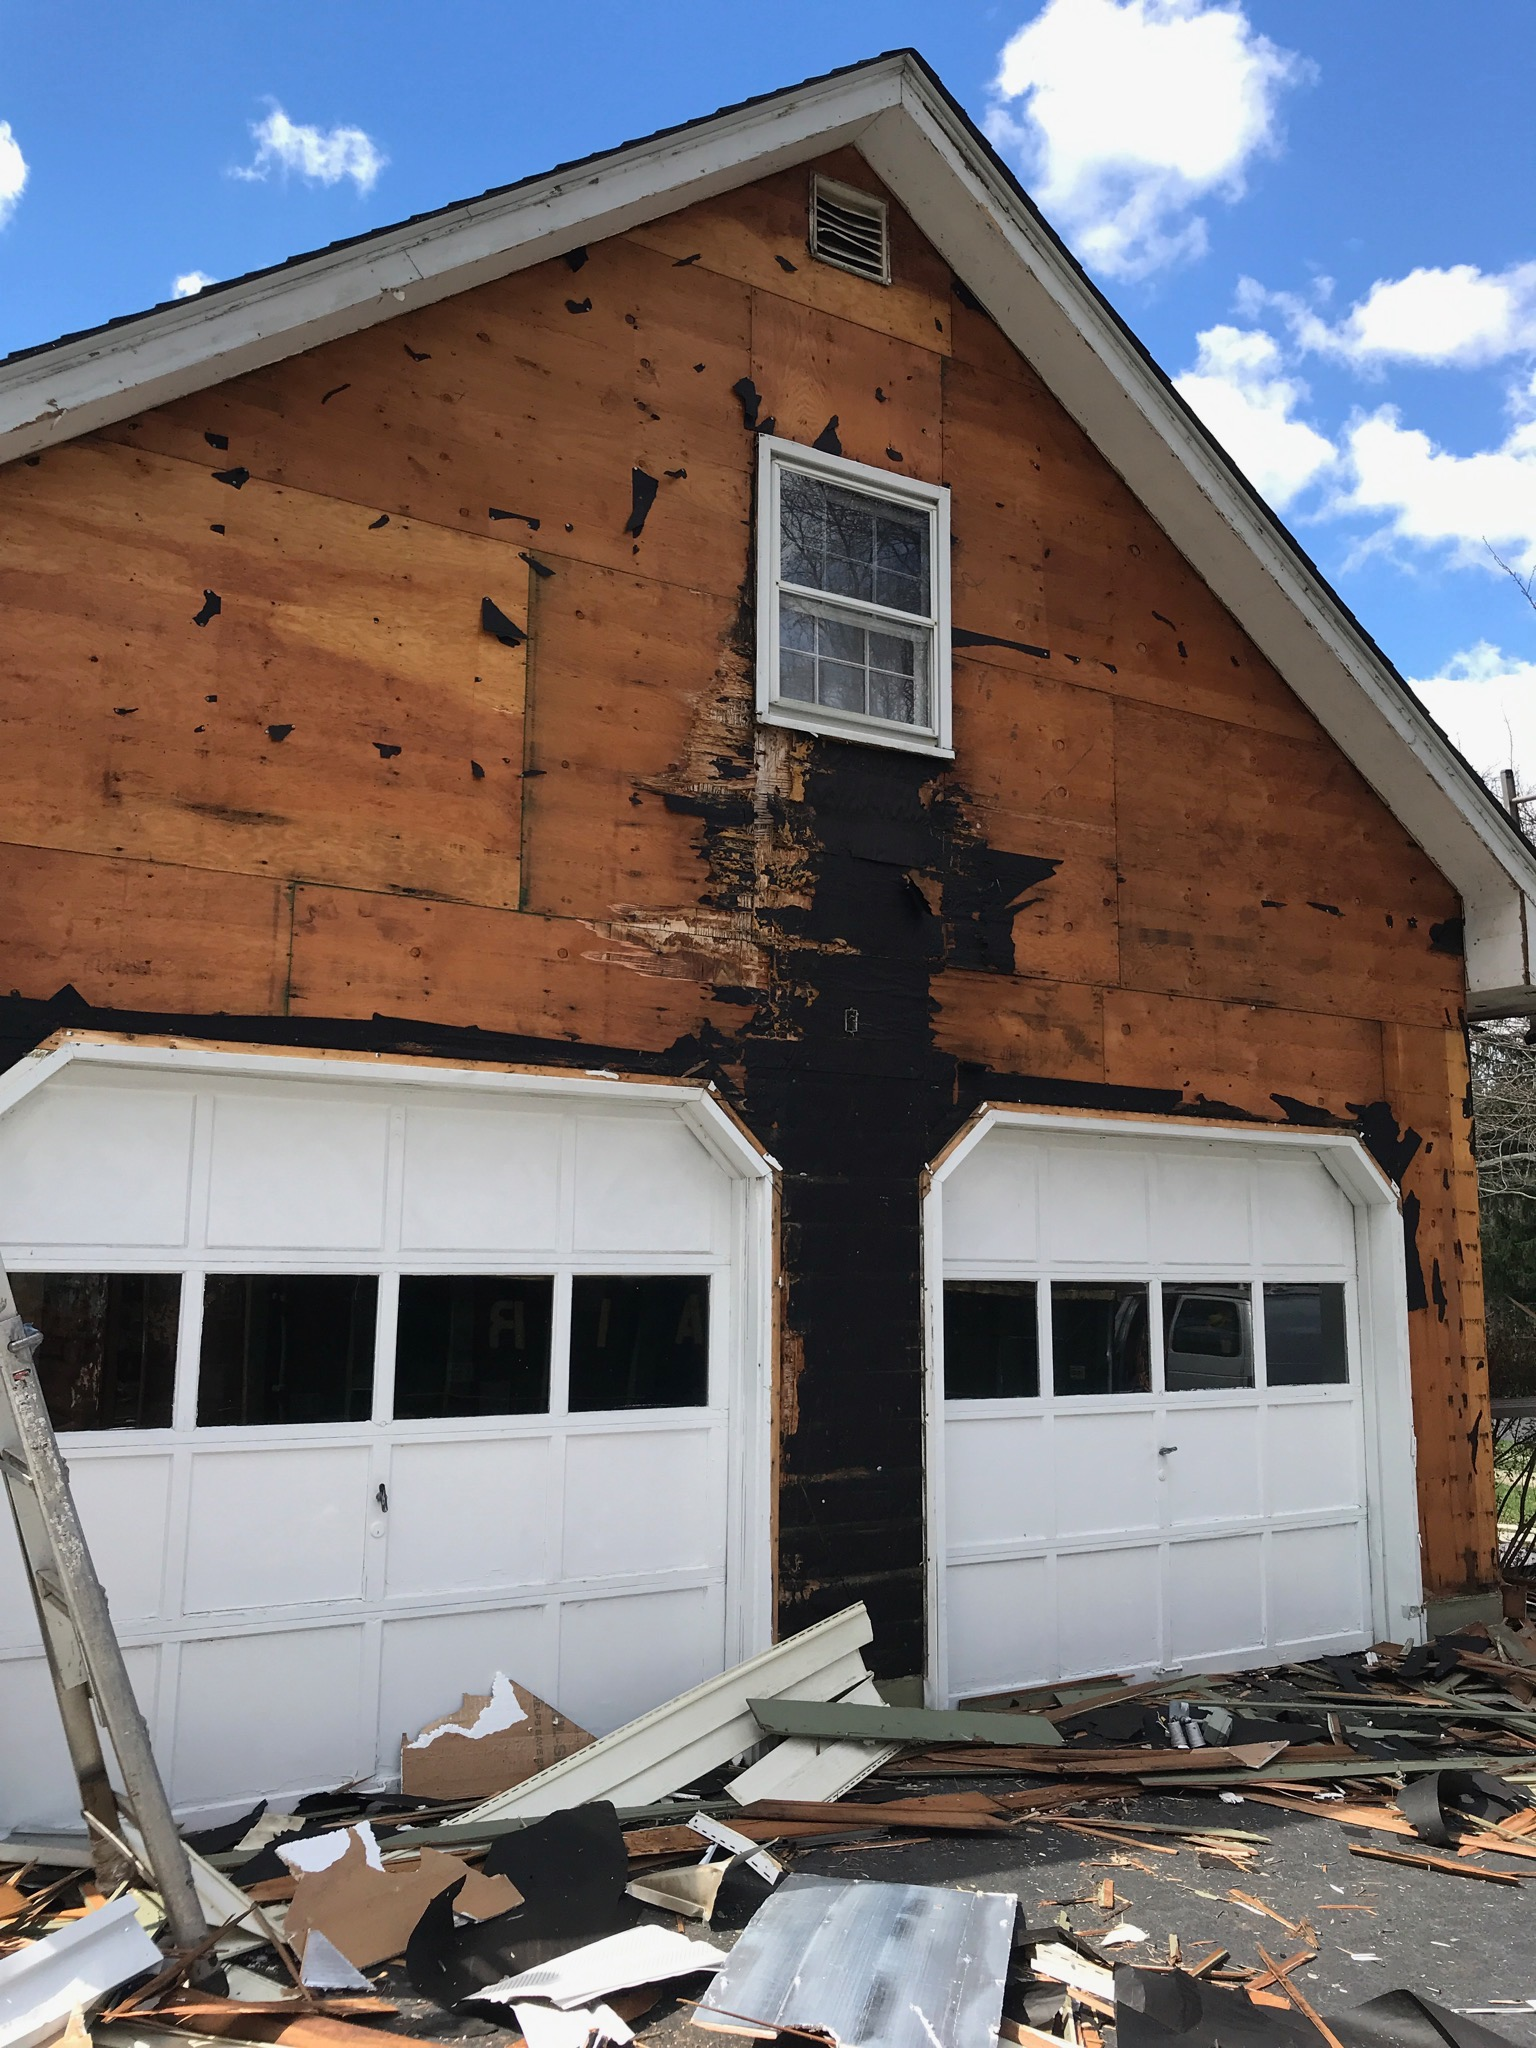 When the contractor took down the siding, the plywood was rotted from the window leaking. Unexpected issues can lead to some serious expenses!